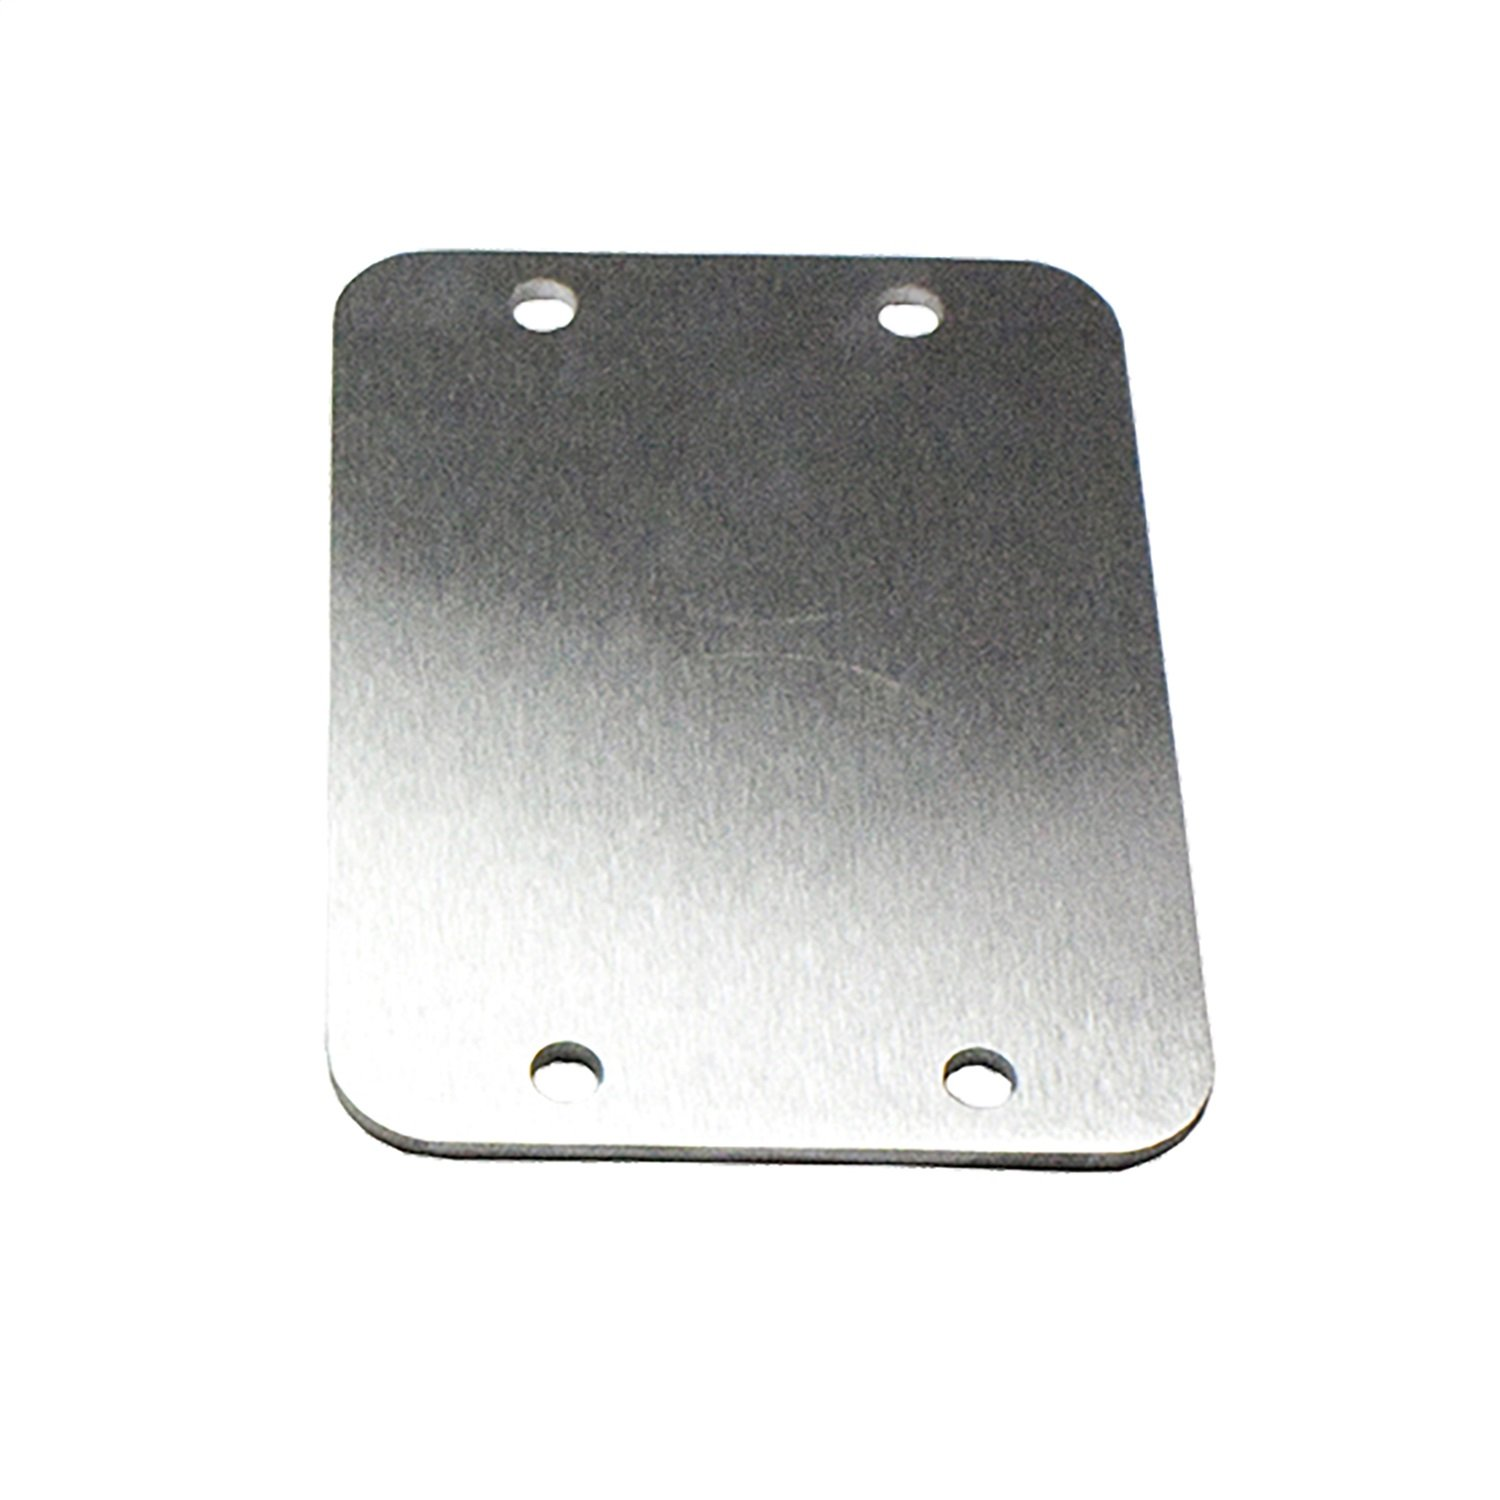 Yukon Gear & Axle (YA W39147) Disconnect Block-Off Plate for Dana 30 Differential